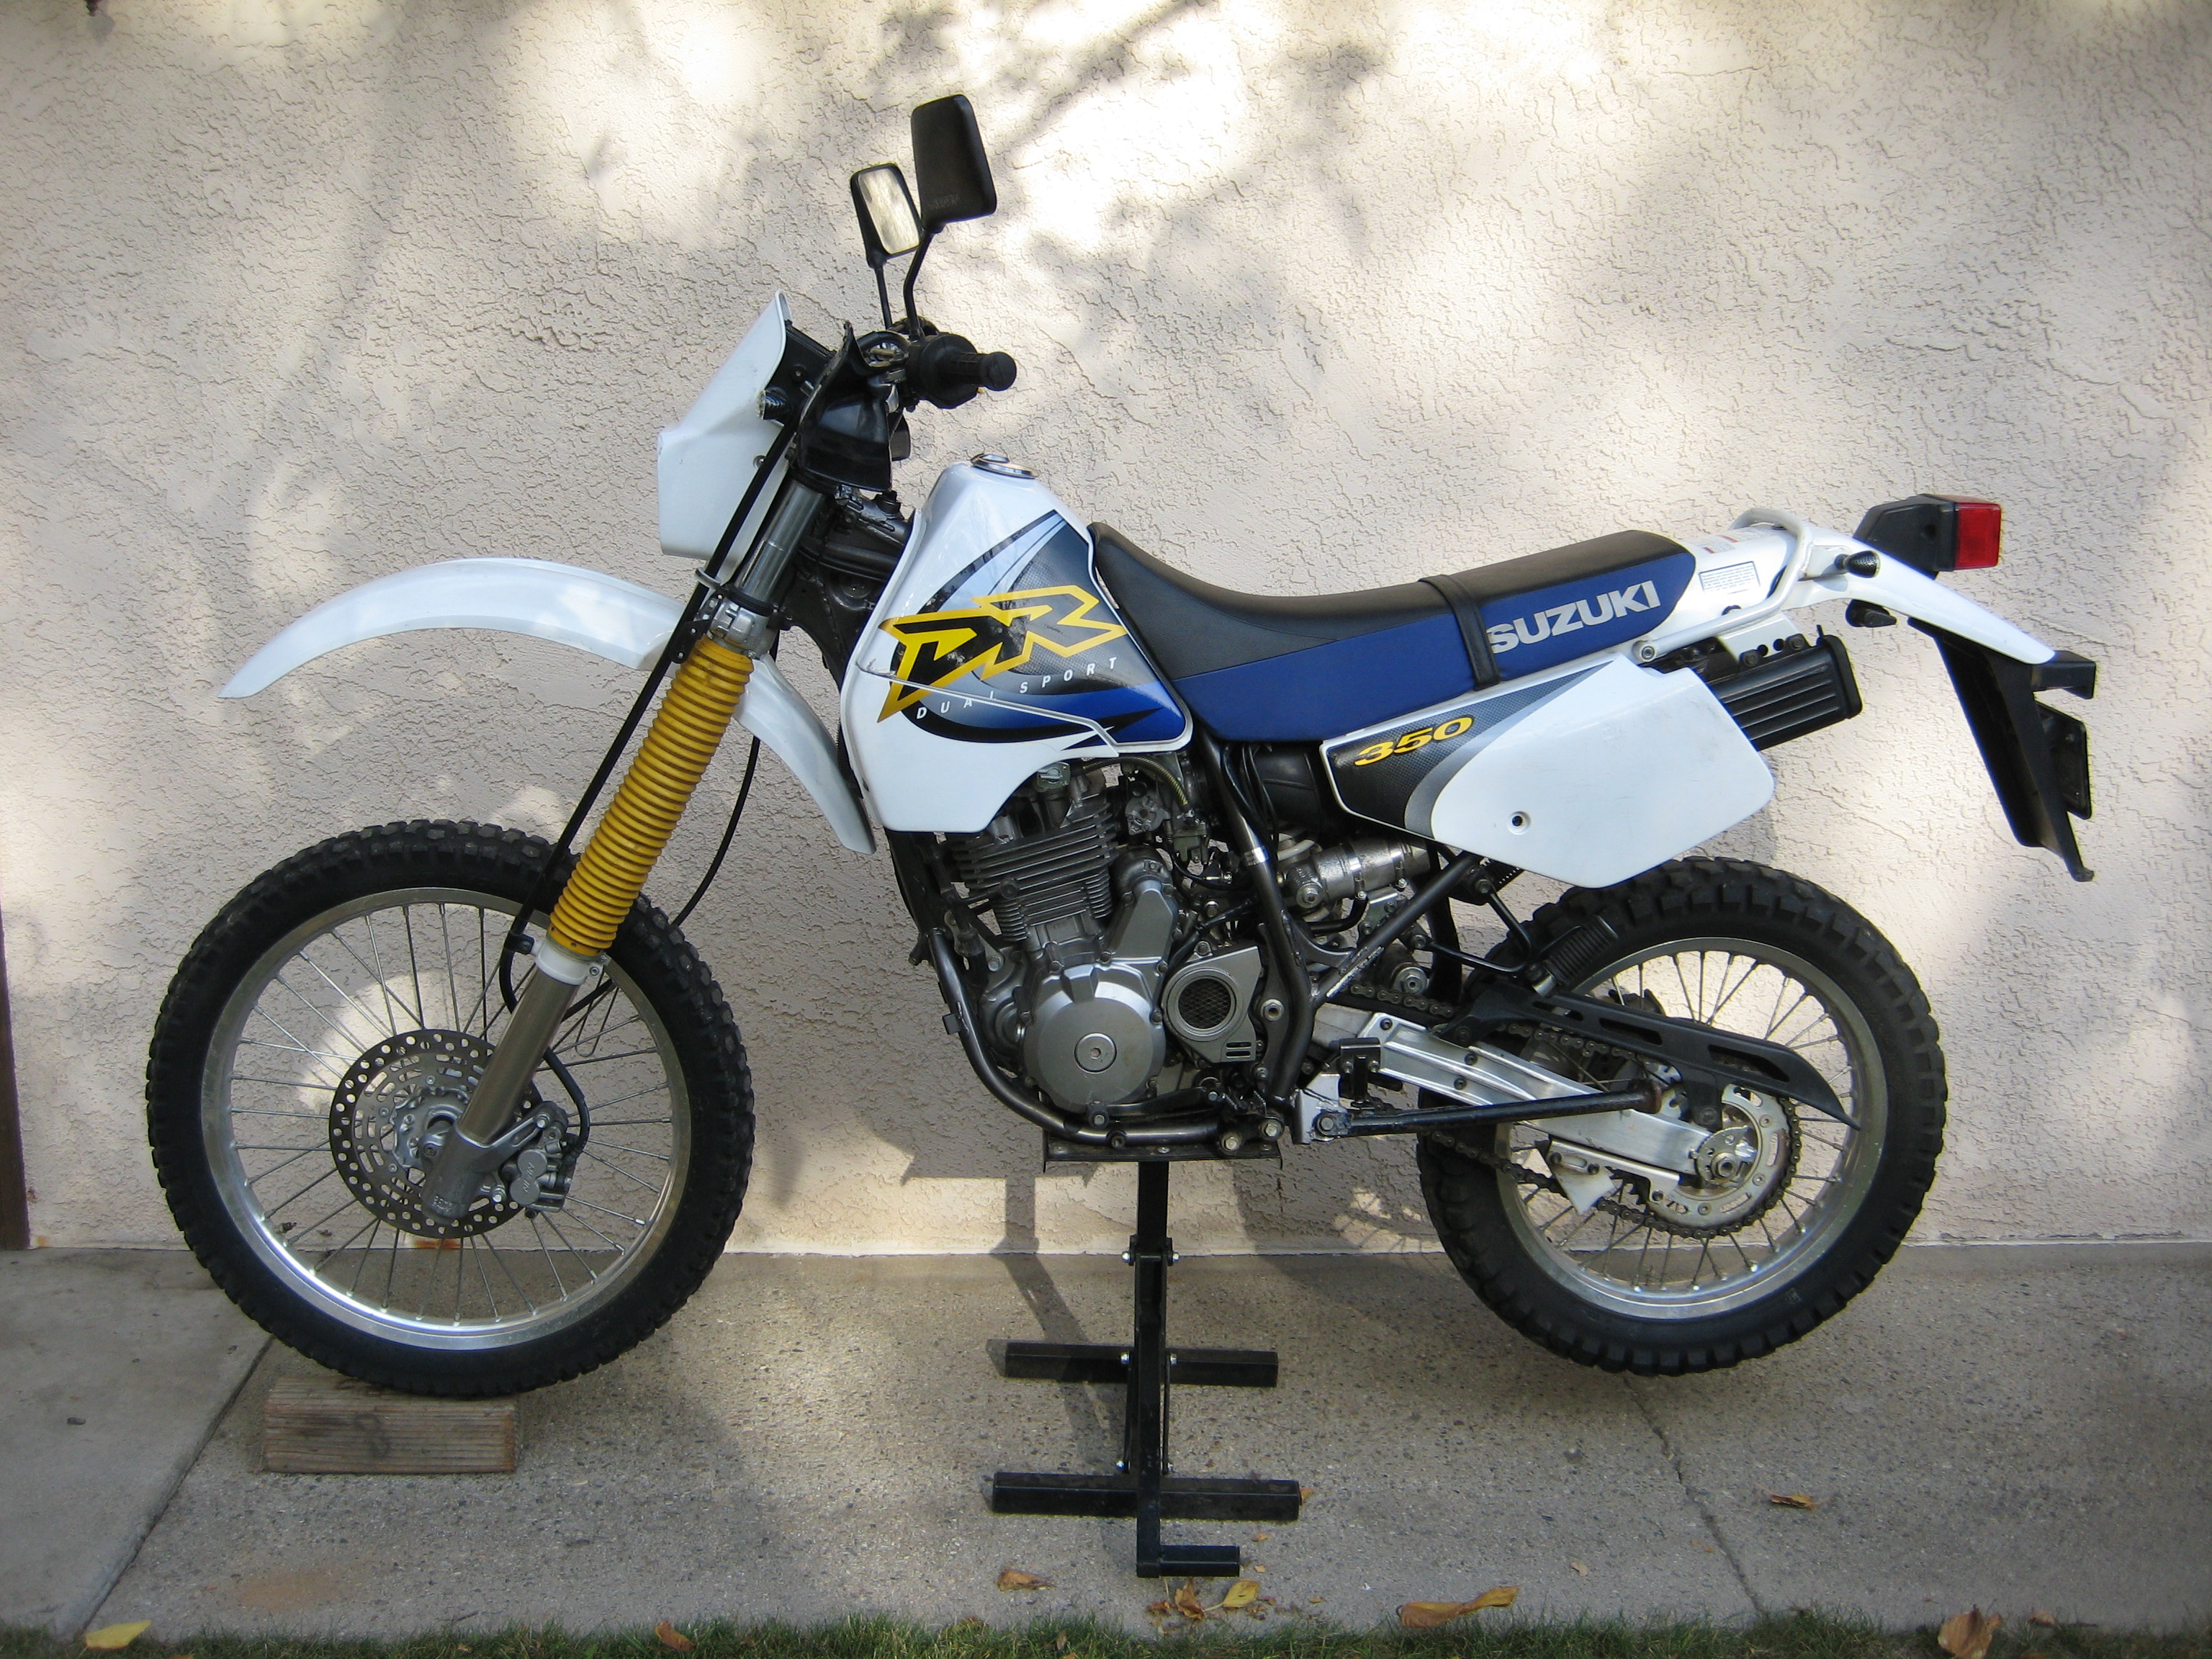 Black Suzuki Dr350 Dr350se Wiring Diagram If Anybody Is Interested I Have A For Sale In The Flea Market 3072x2304